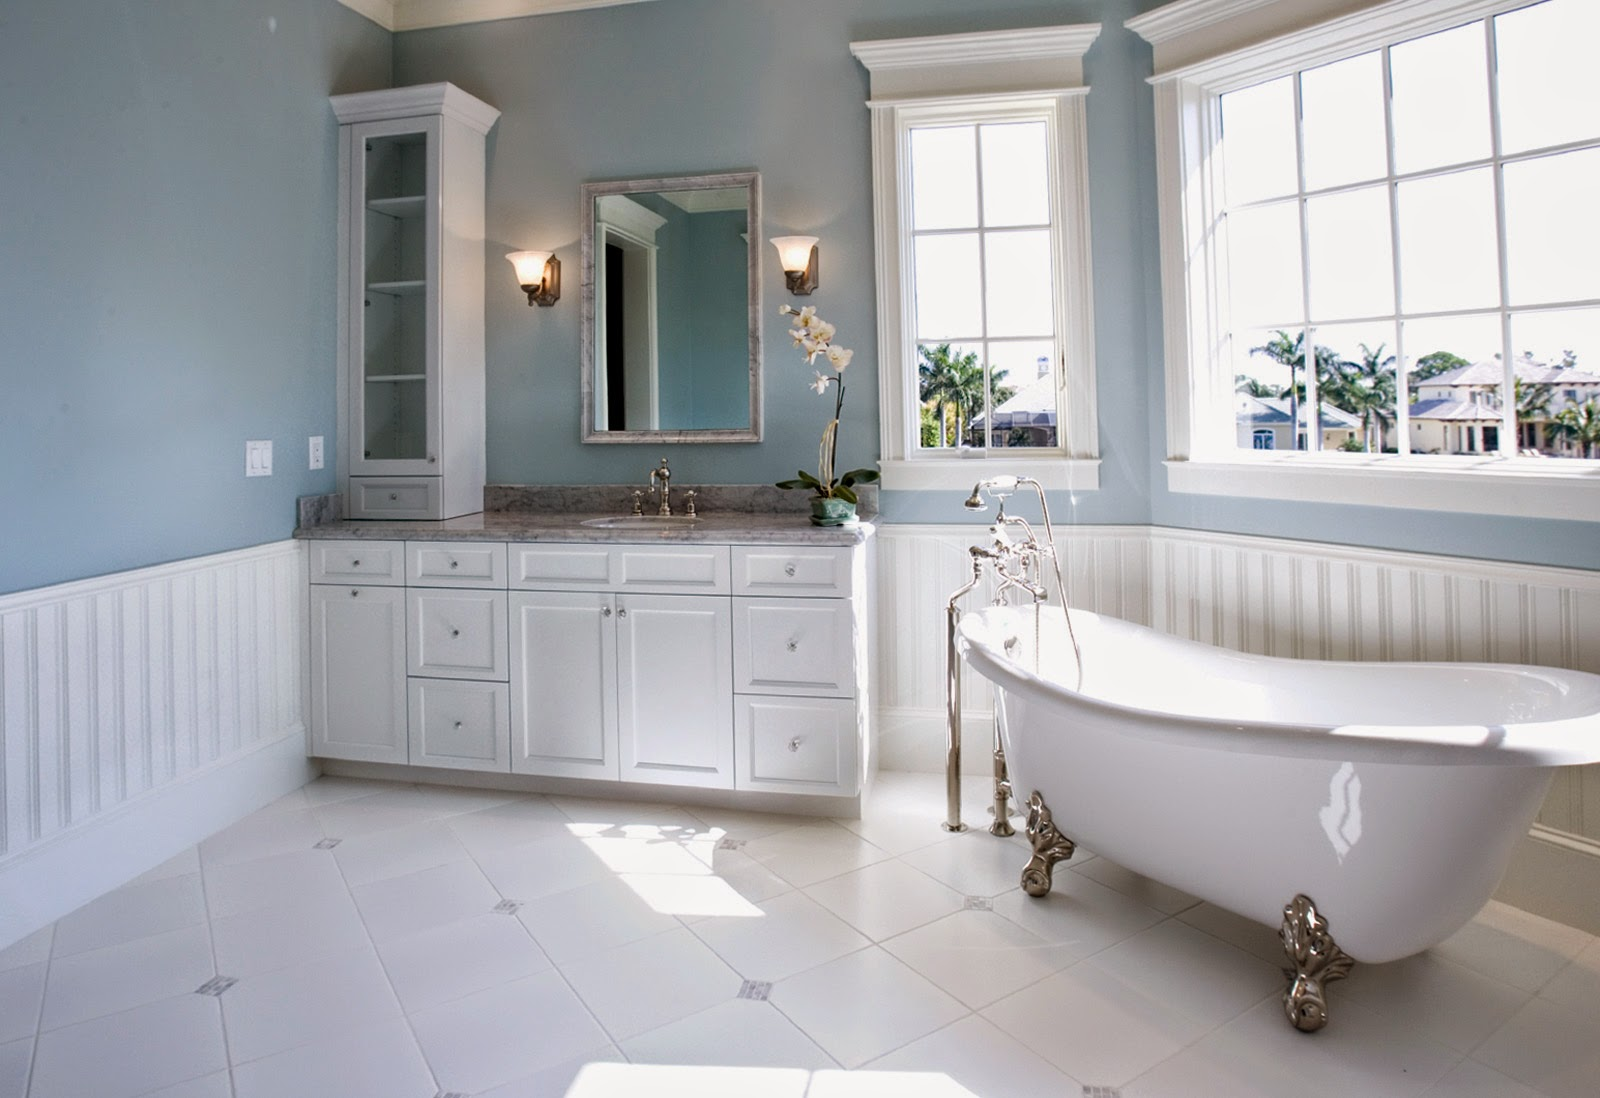 Top 10 beautiful bathroom design 2014 home interior blog for Beautiful bathroom designs